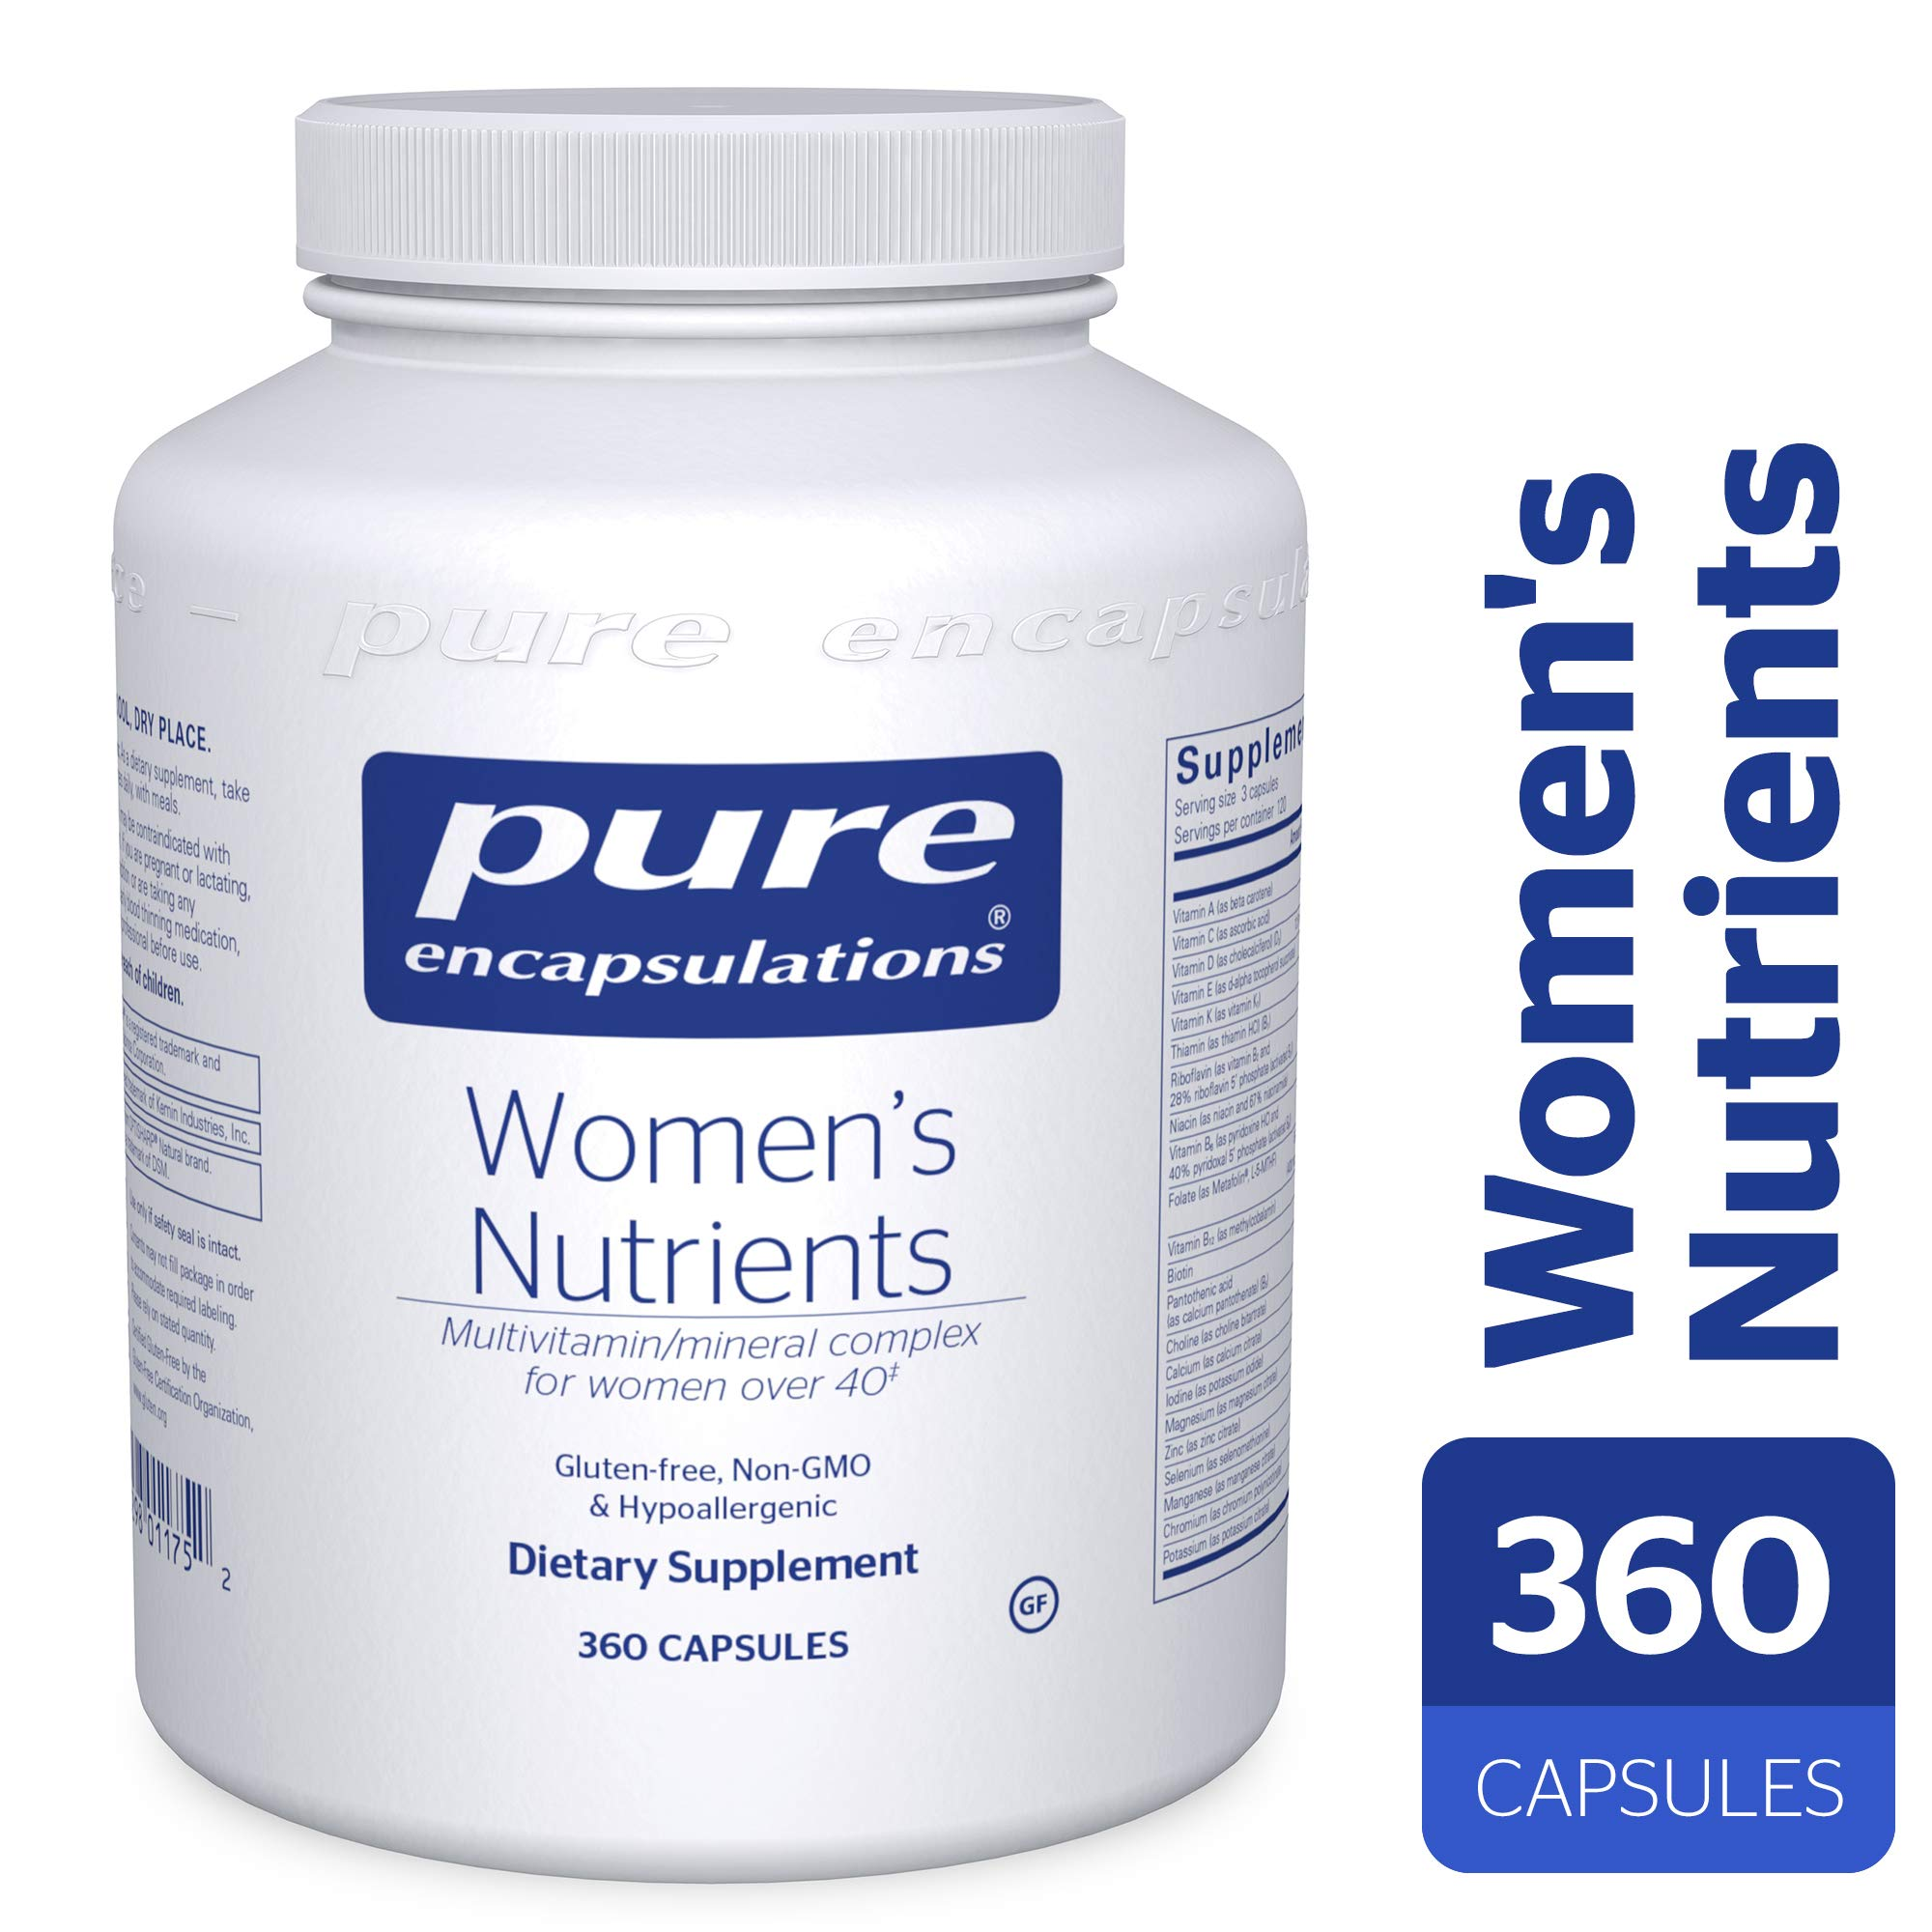 Pure Encapsulations - Women's Nutrients - Hypoallergenic Multivitamin/Mineral Complex for Women Over 40* - 360 Capsules